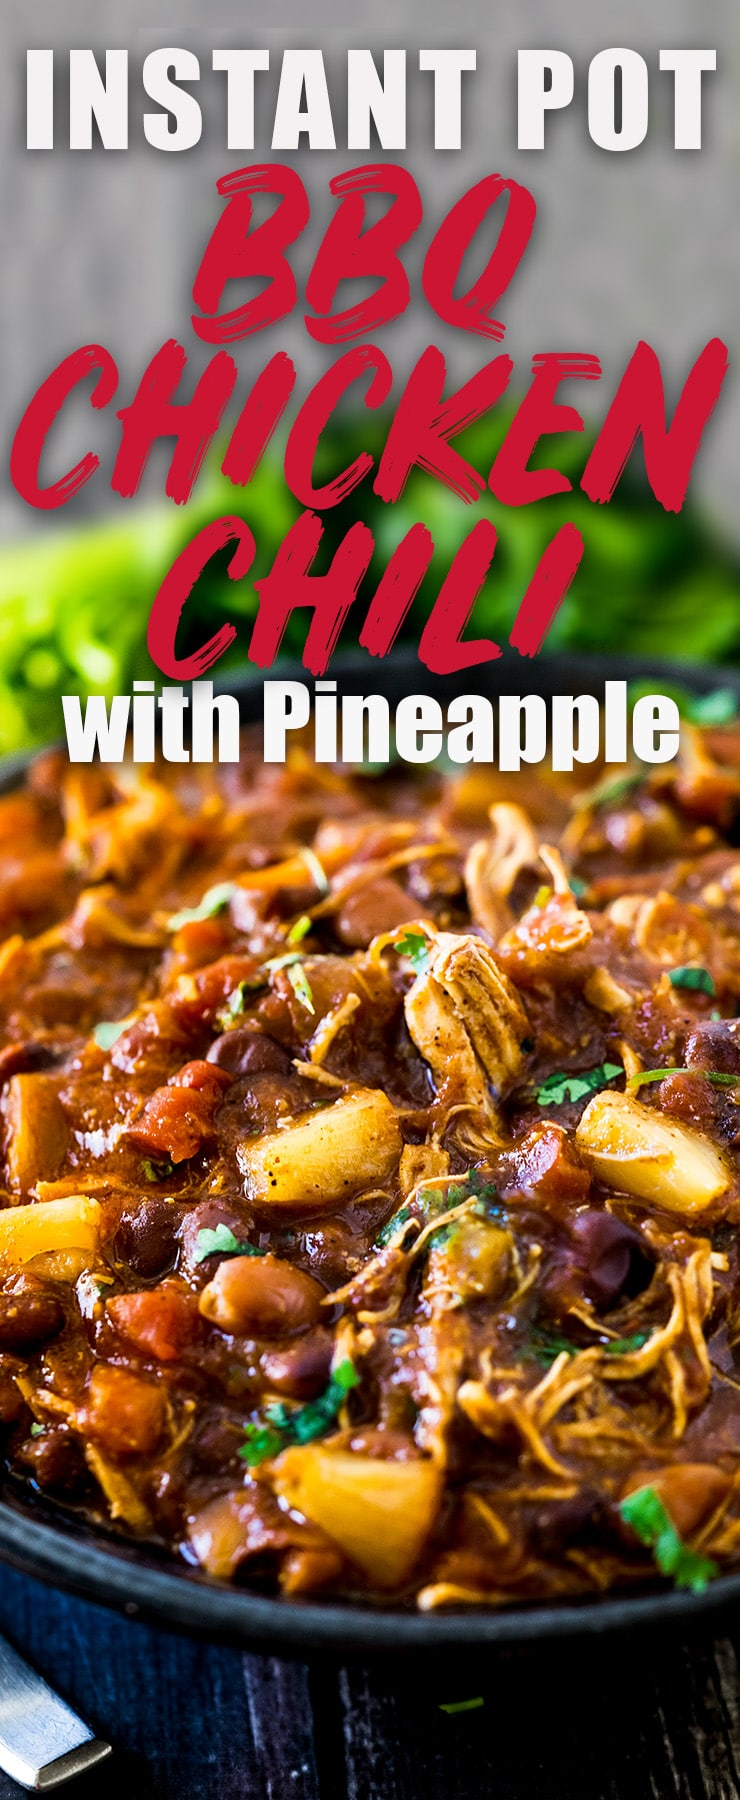 My BBQ Chicken Chili is not only easy to make, it's won a few chili cook-offs, too! It's saucy, sweet, and has a little bit of a kick.  #BBQ #Chili #InstantPot #Pineapple #SlowCooker #ChickenChili